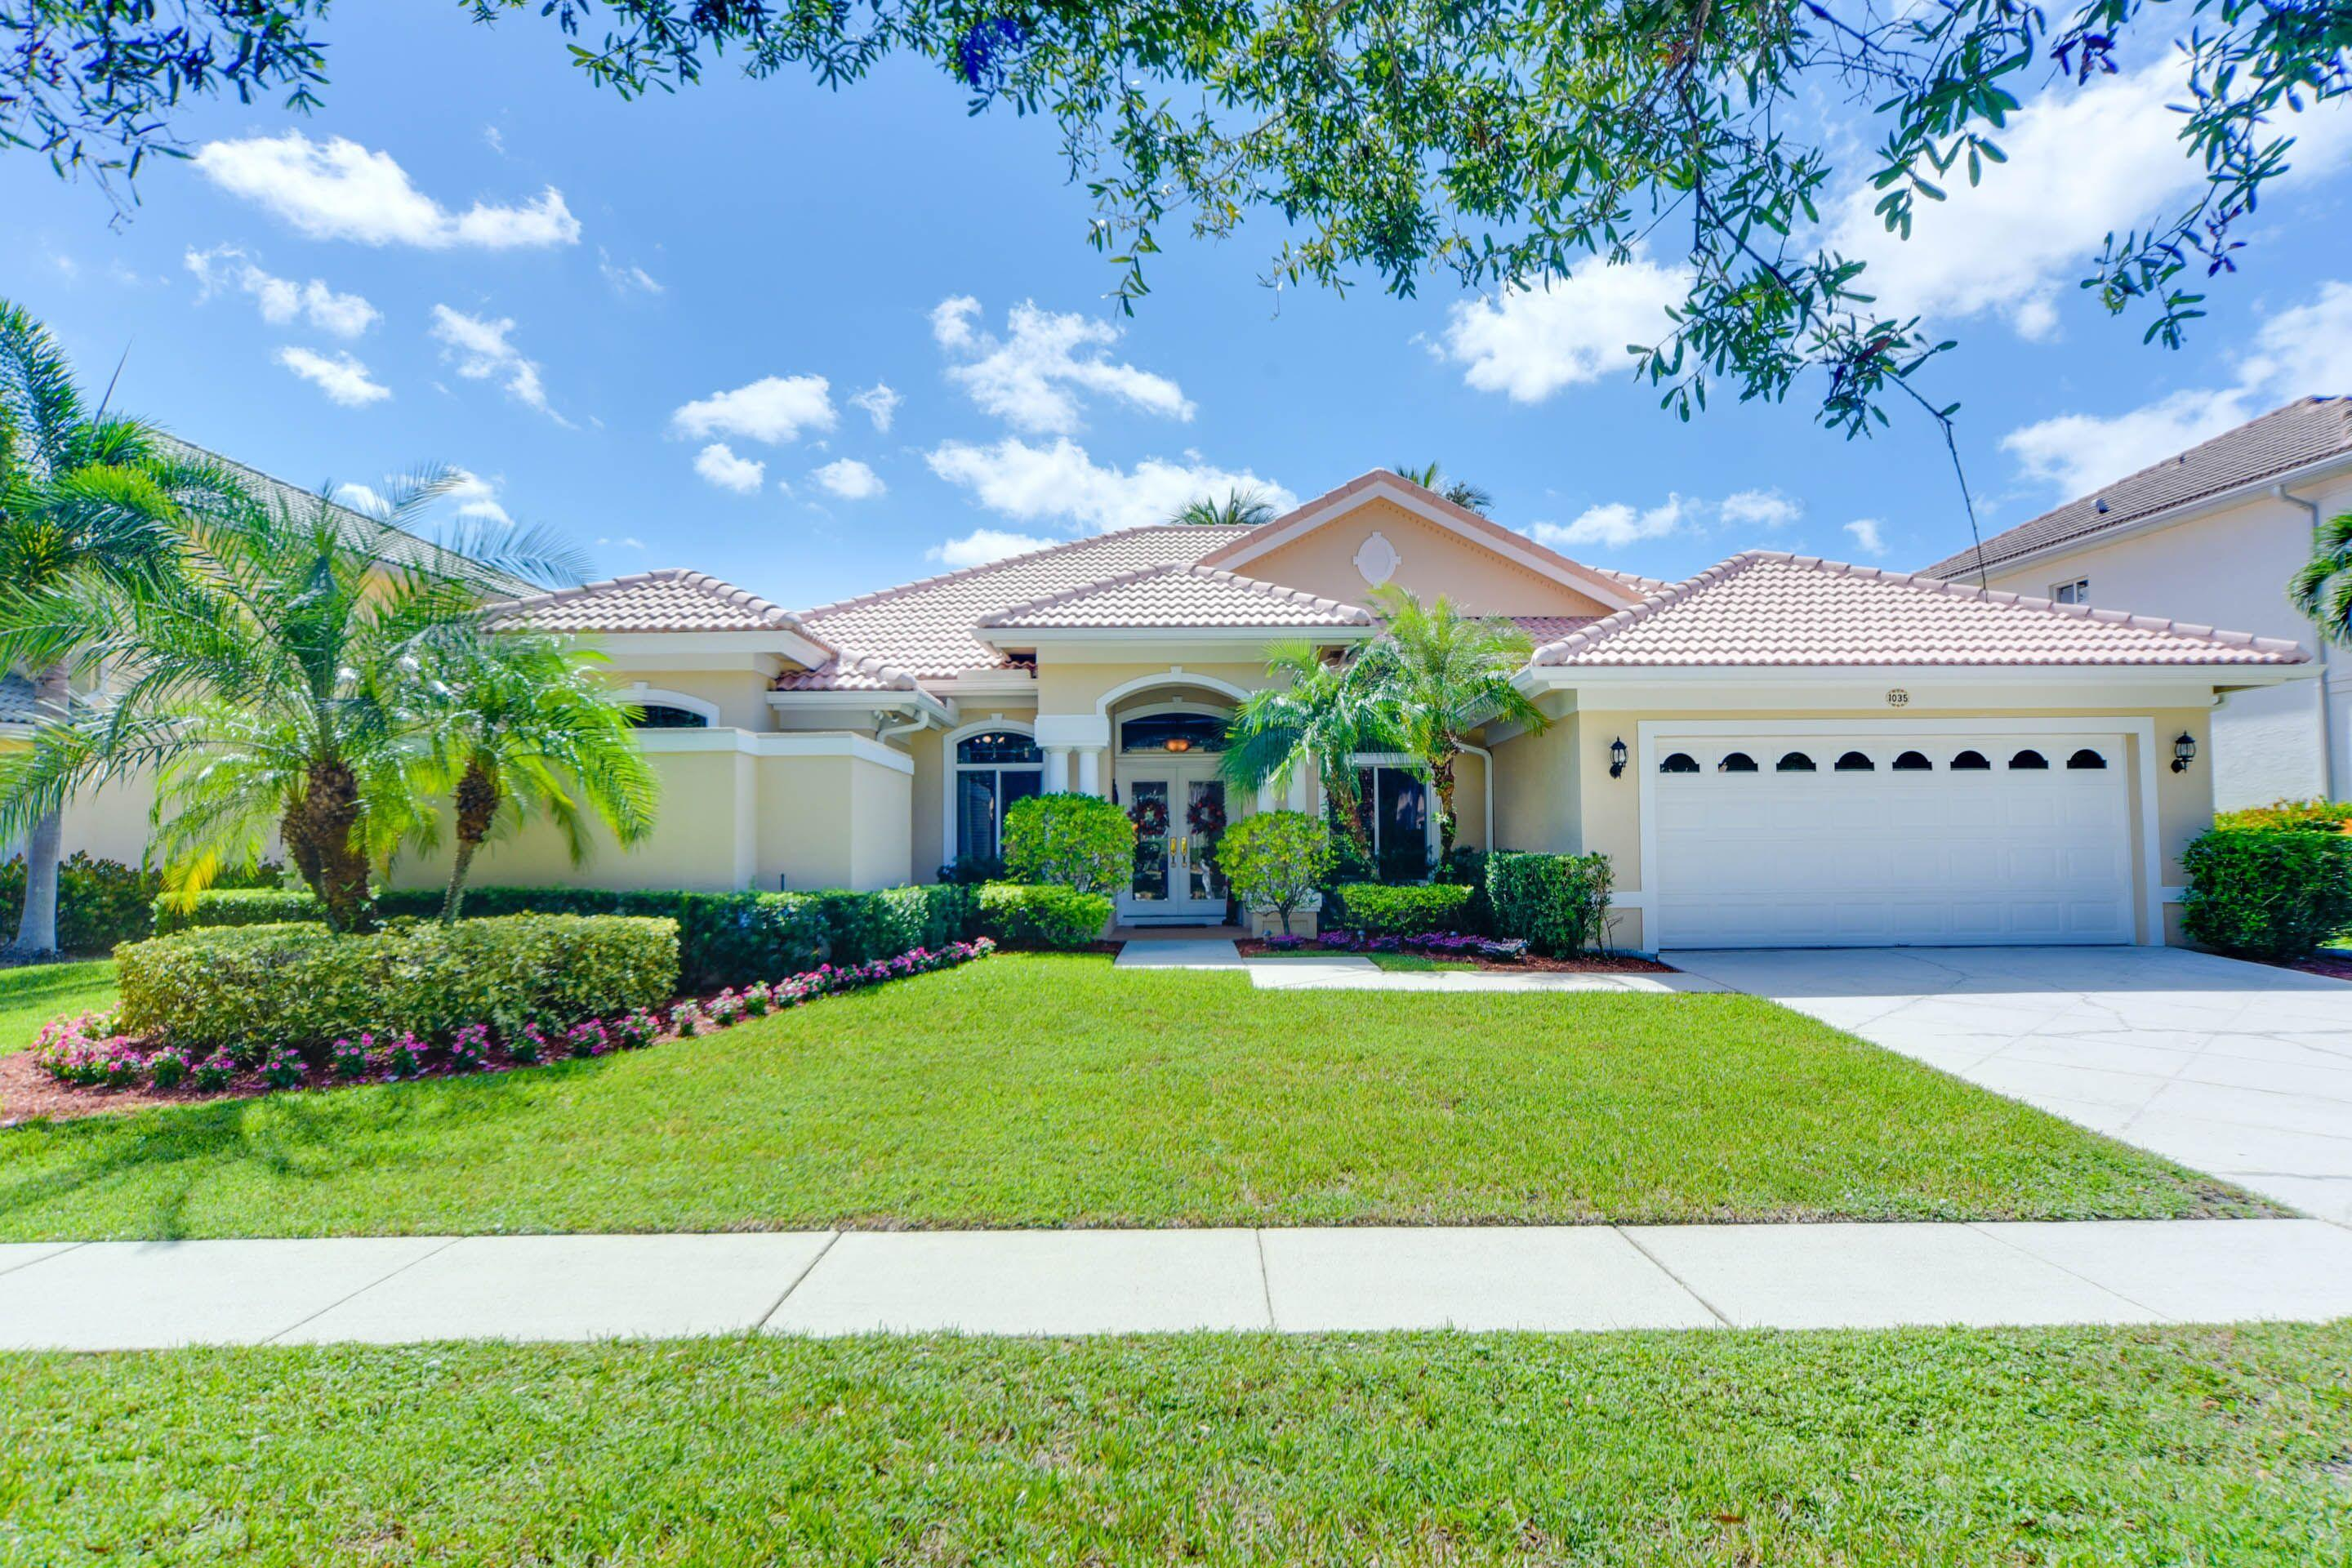 Photo of 1035 Egret Circle N, Jupiter, FL 33458